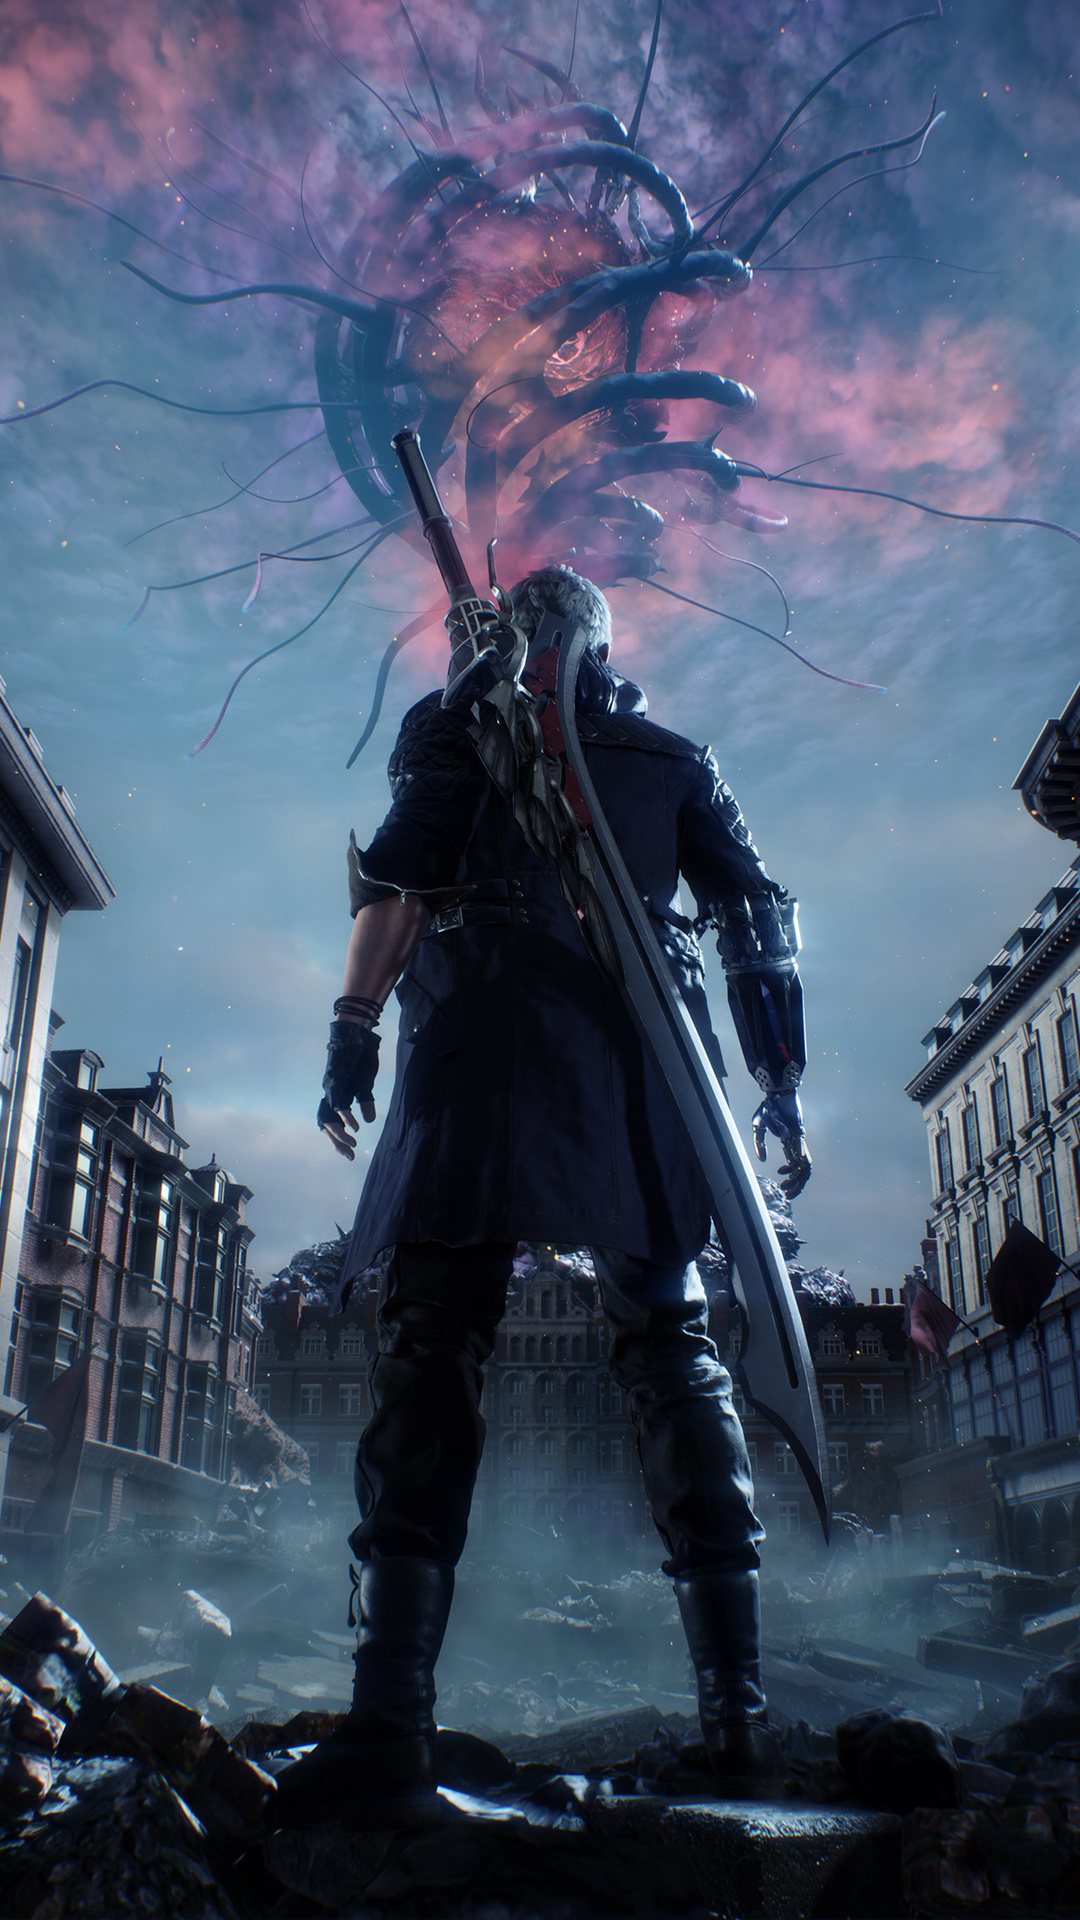 1080x1920 devil may cry 5 key art 4k iphone 7 6s 6 plus pixel xl one plus 3 3t 5 hd 4k - Devil may cry hd pics ...